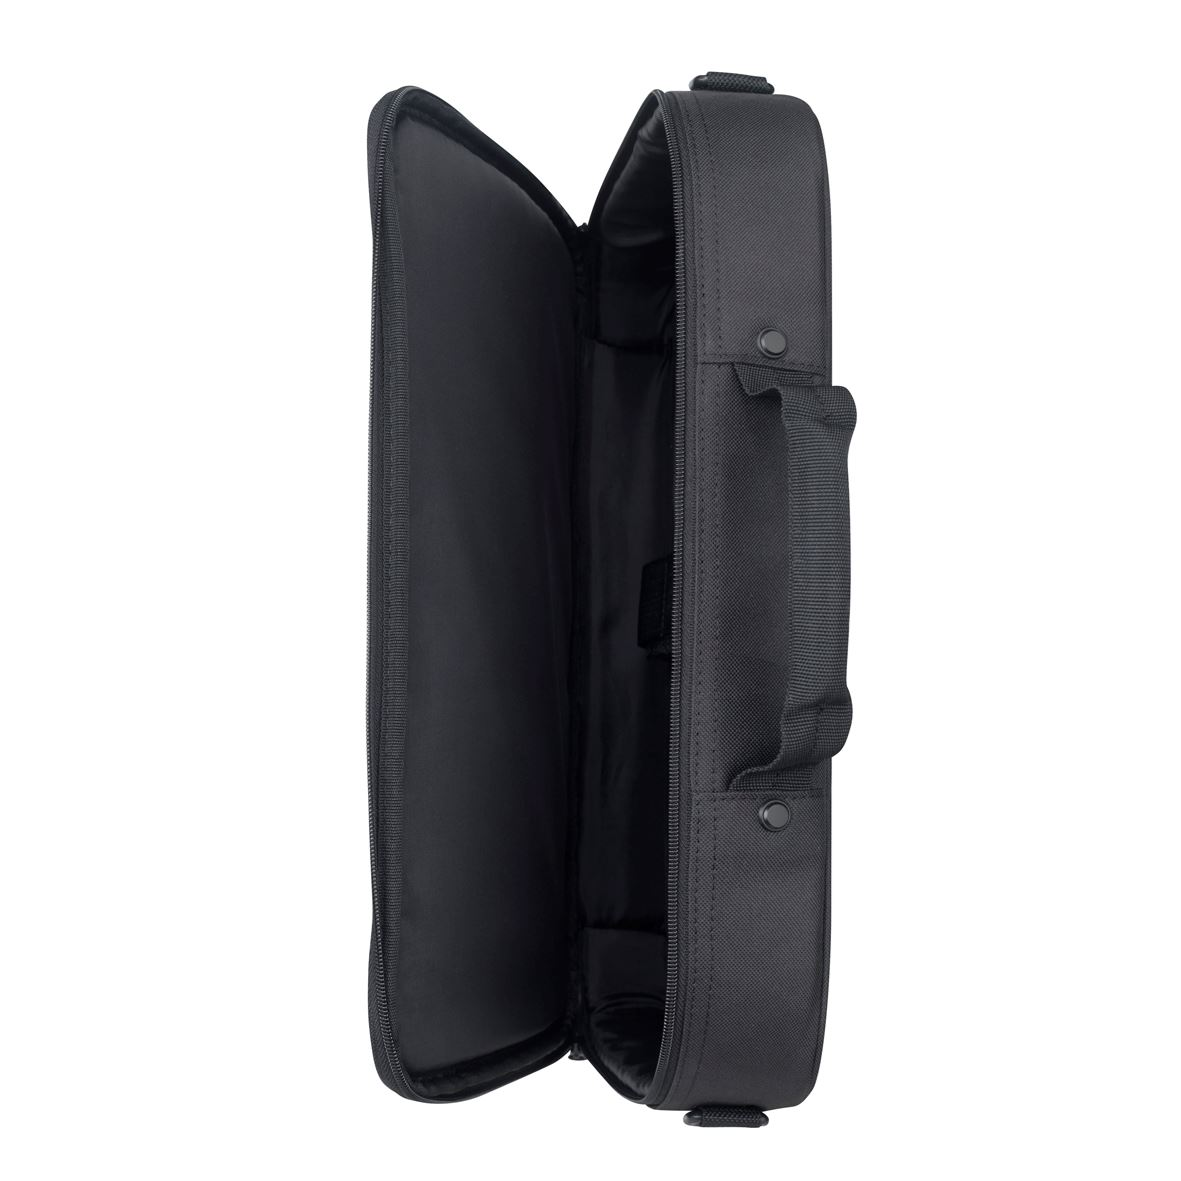 Intellect 16 clamshell case black targus for Clamshell casing